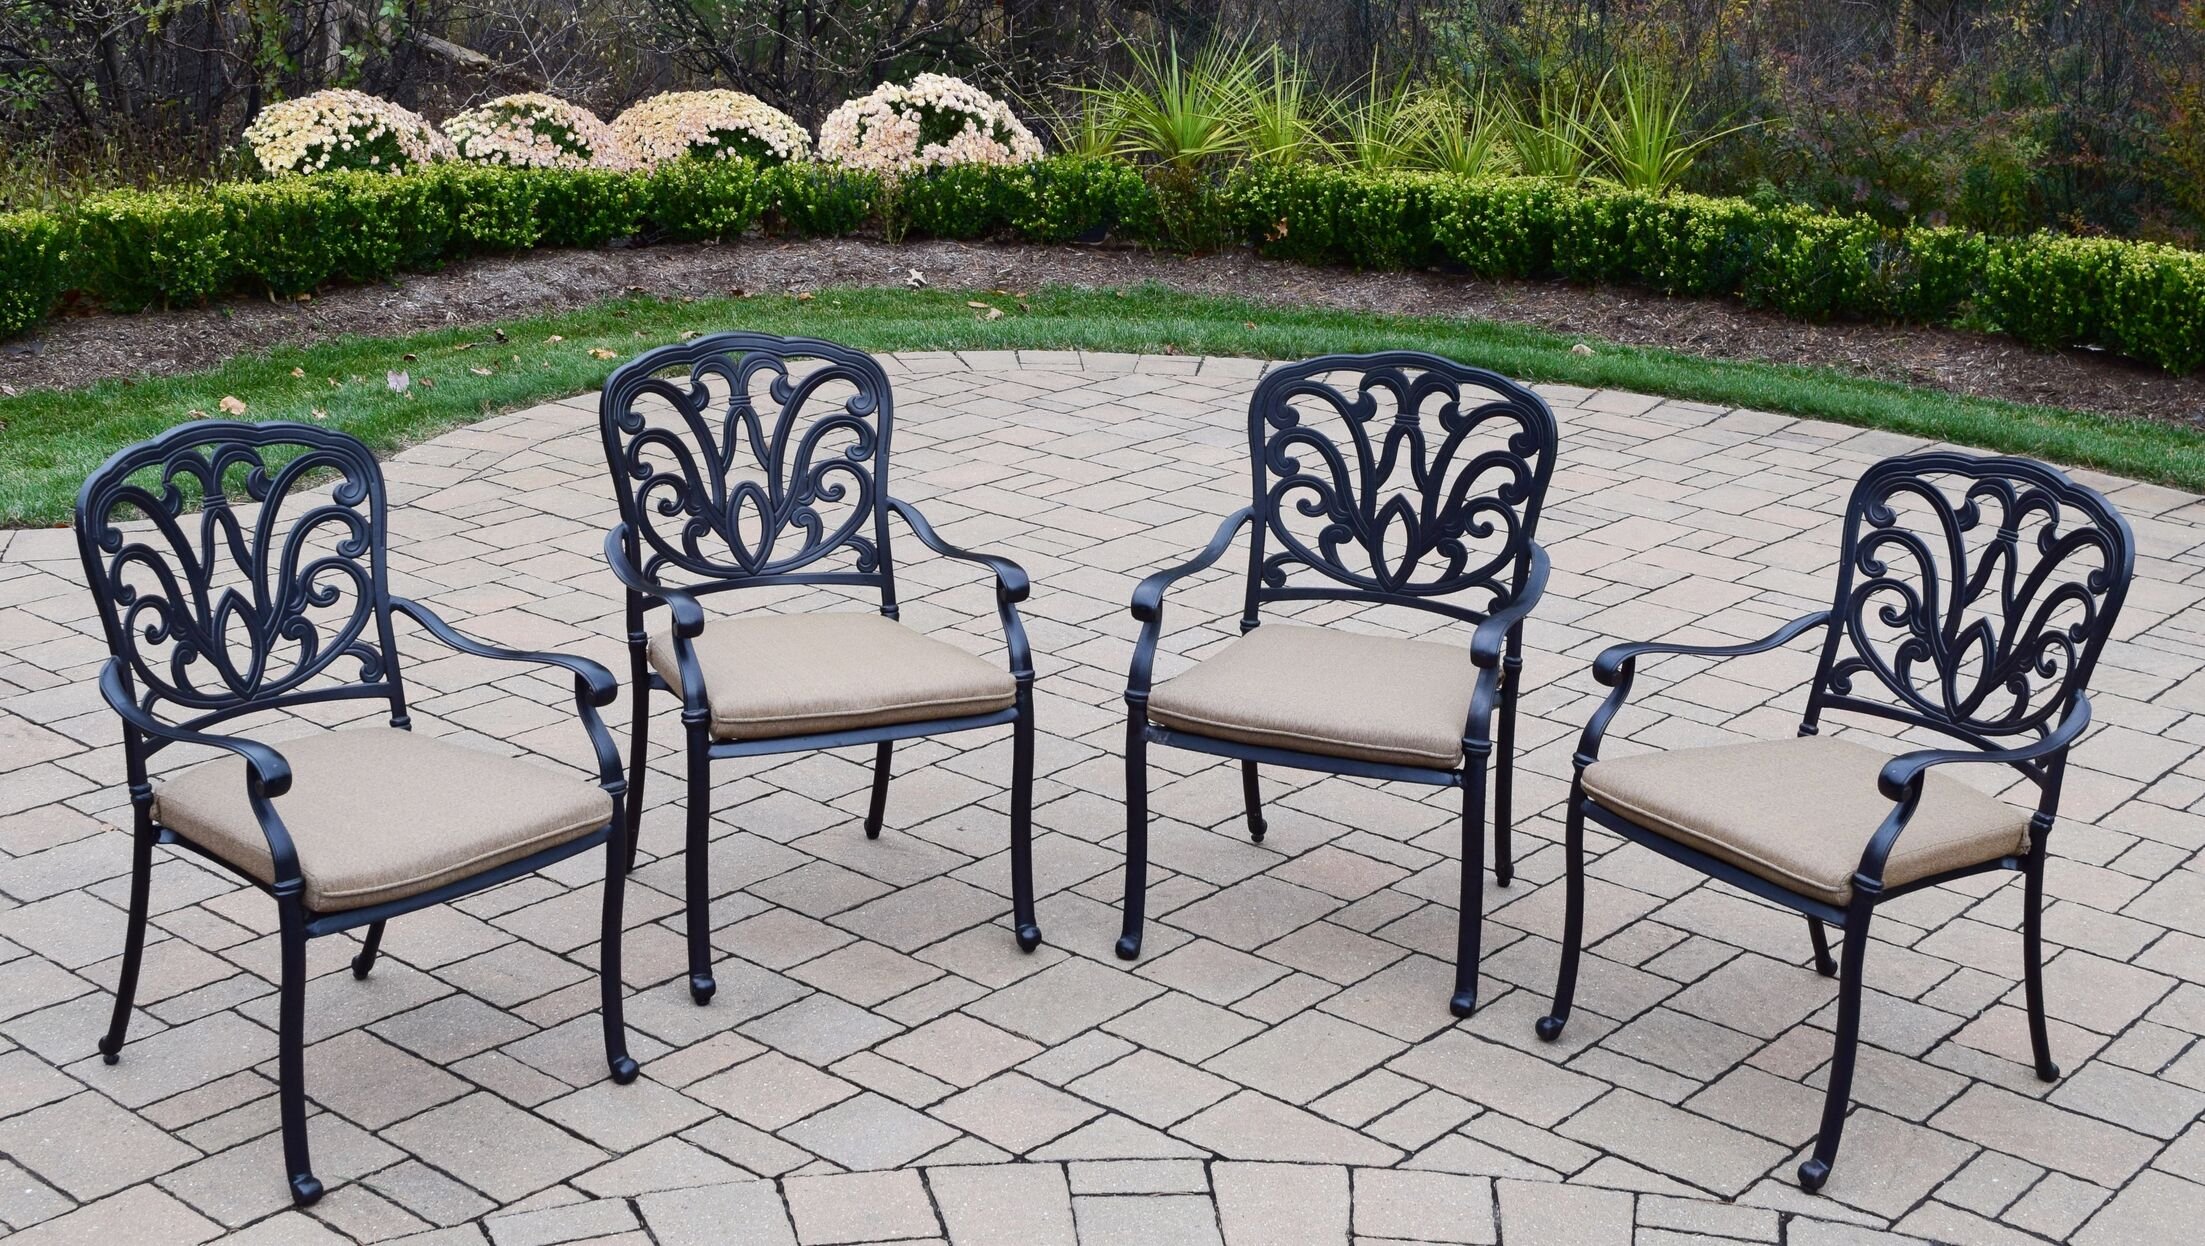 Bosch Aluminum Outdoor 11 Piece Dining Set with Cushions